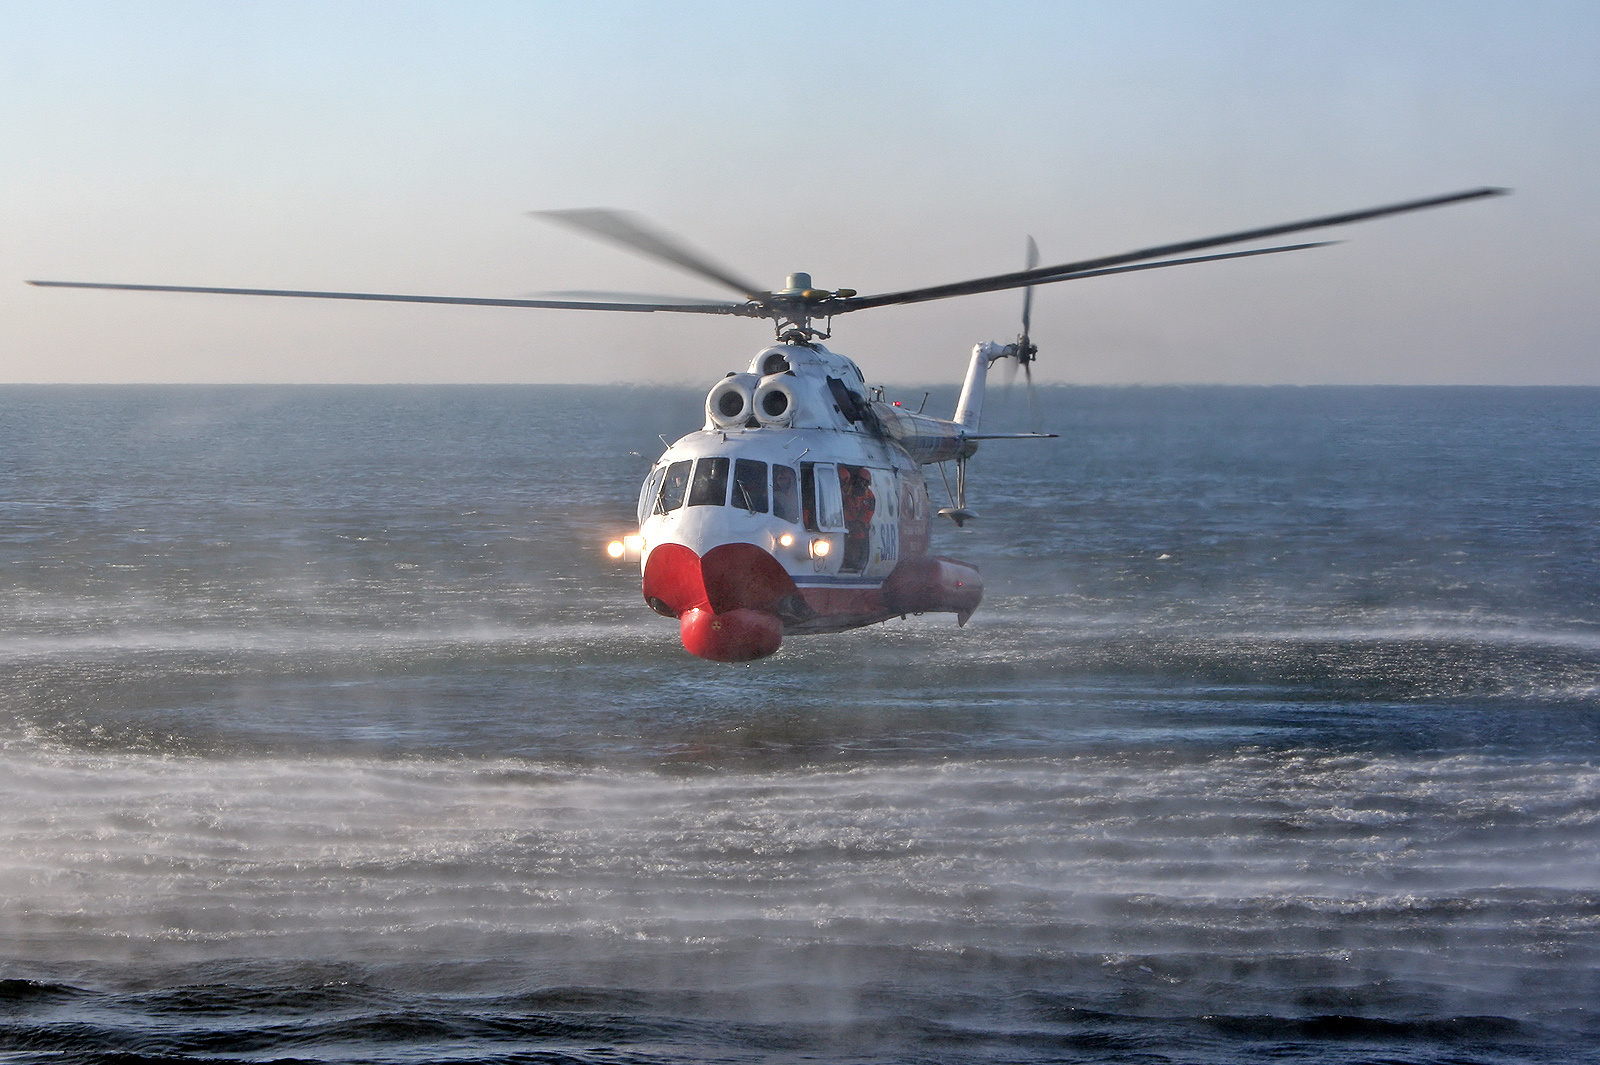 water Helicopters Mil vehicles HD Wallpaper